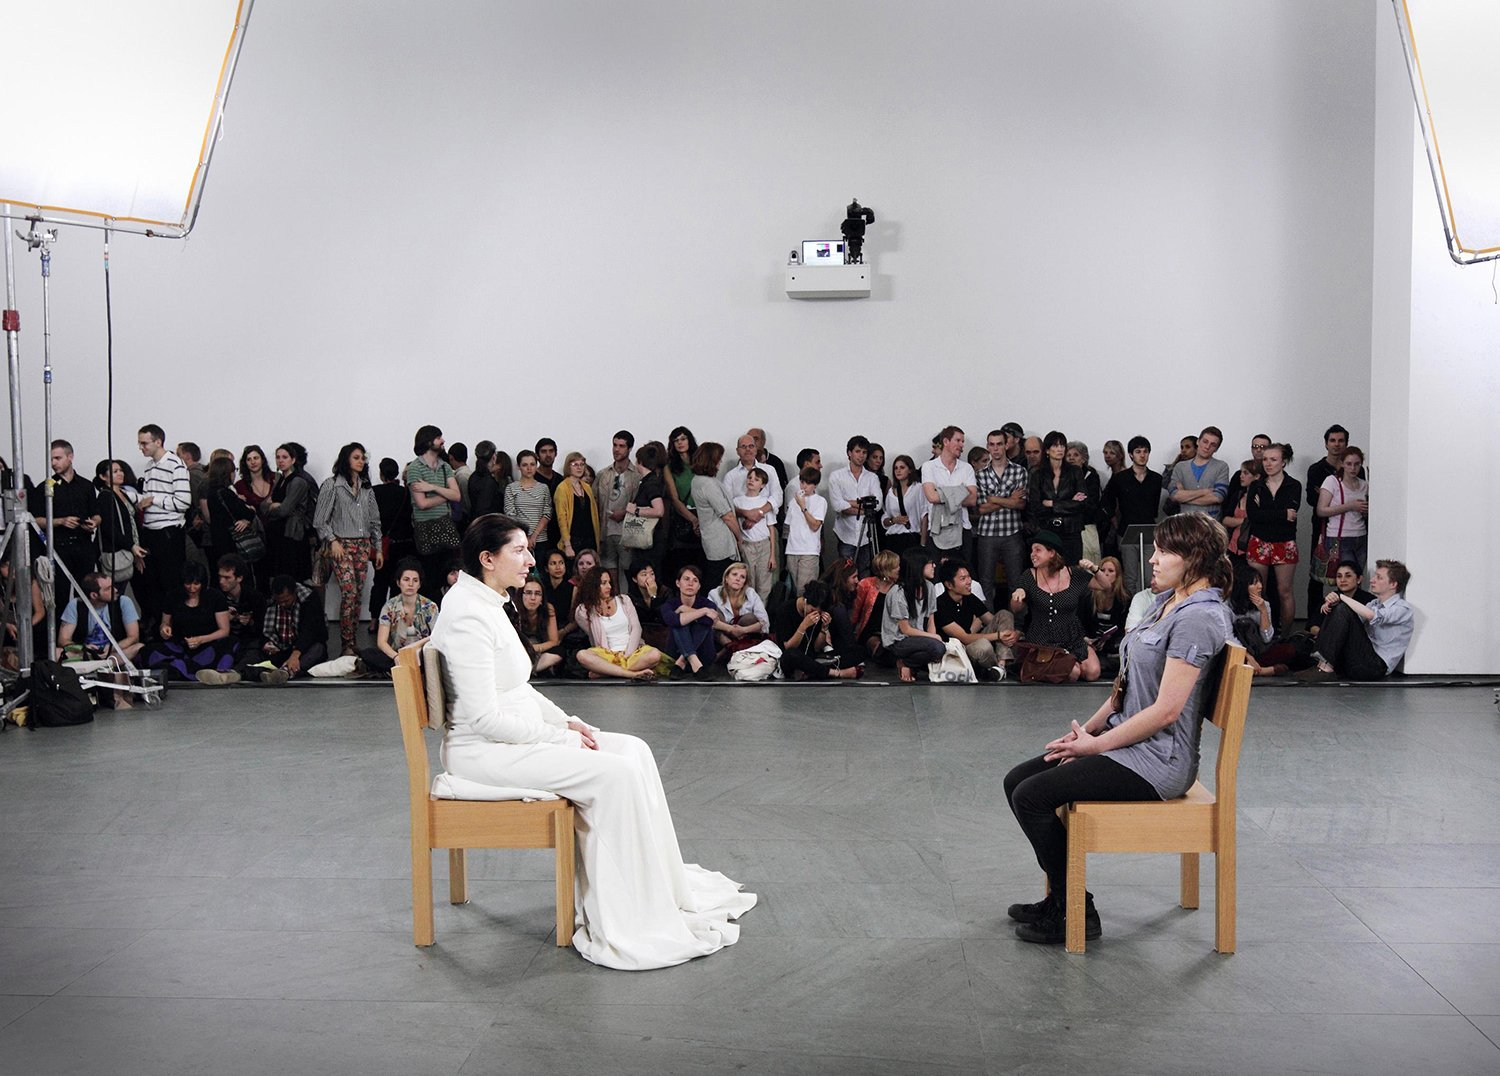 Marina Abramovic - The Artist is Present, 2010 © Marco Anelli (Cortesia do Acervo Marina Abramovic), the artist is present 2010